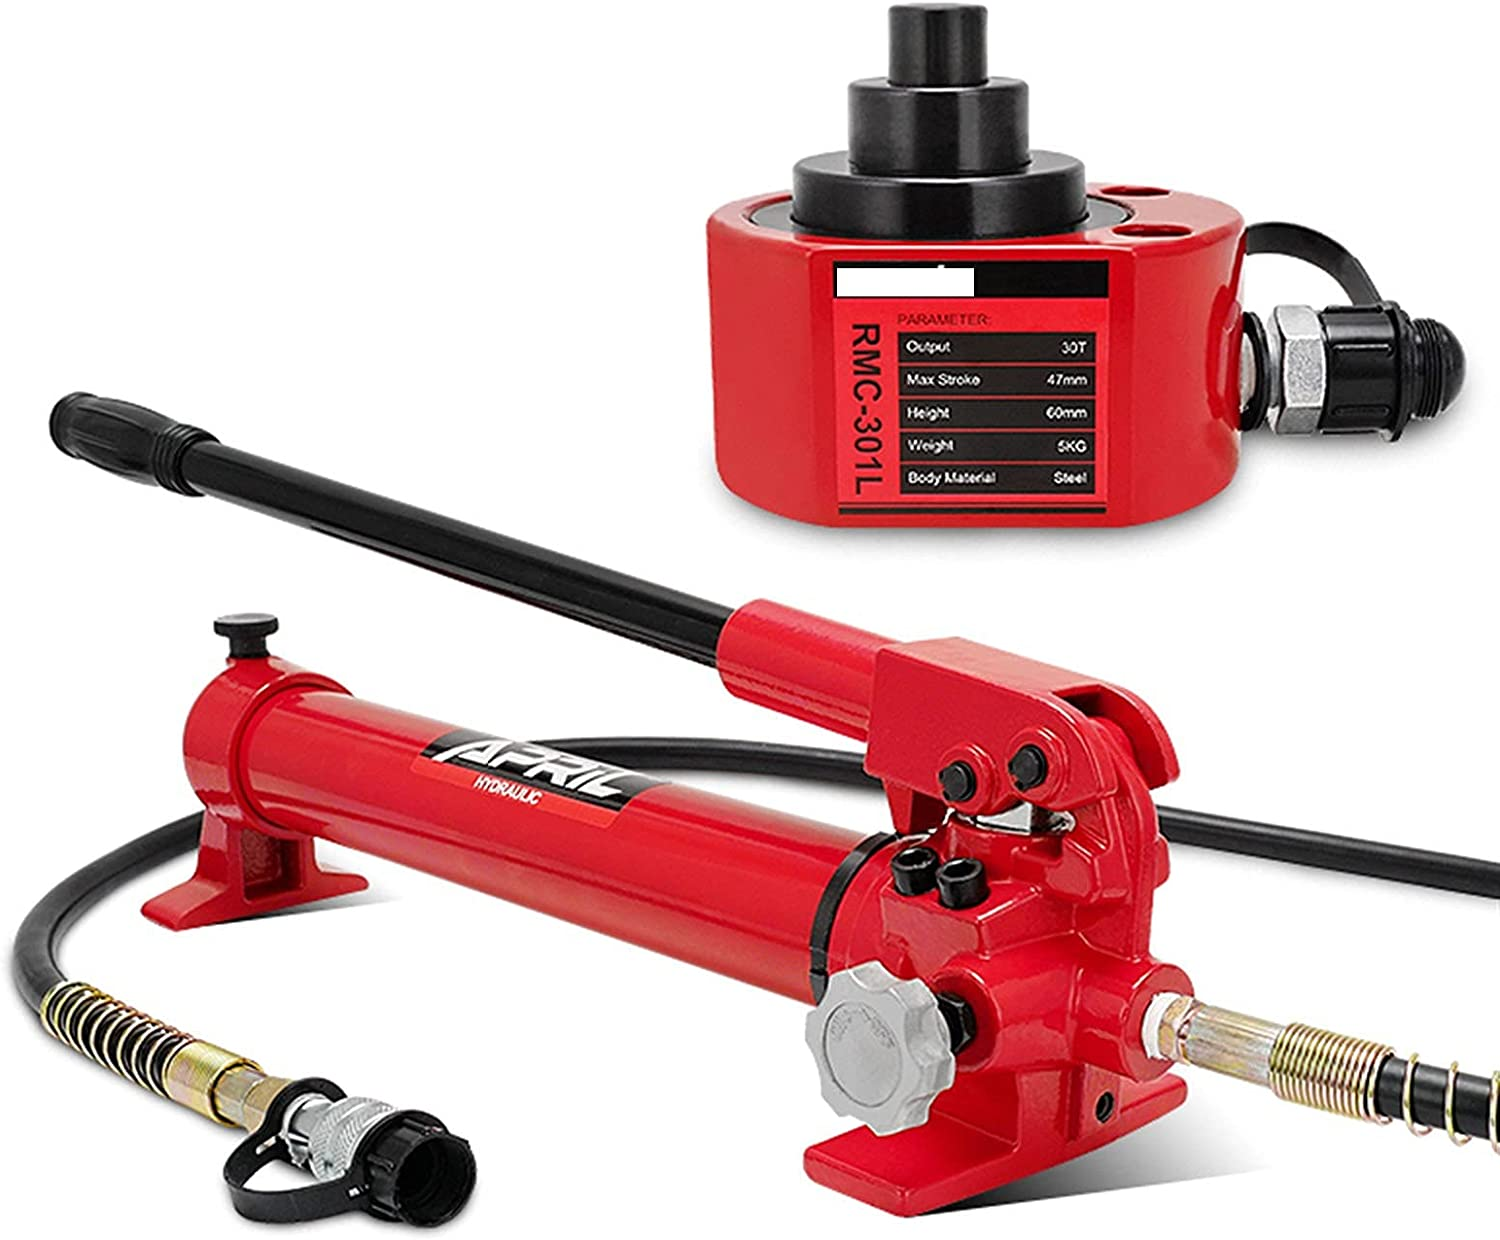 2021 autumn and winter new hydraulic tools Multistage Free shipping on posting reviews RMC-301L Hydraulic Cylinder